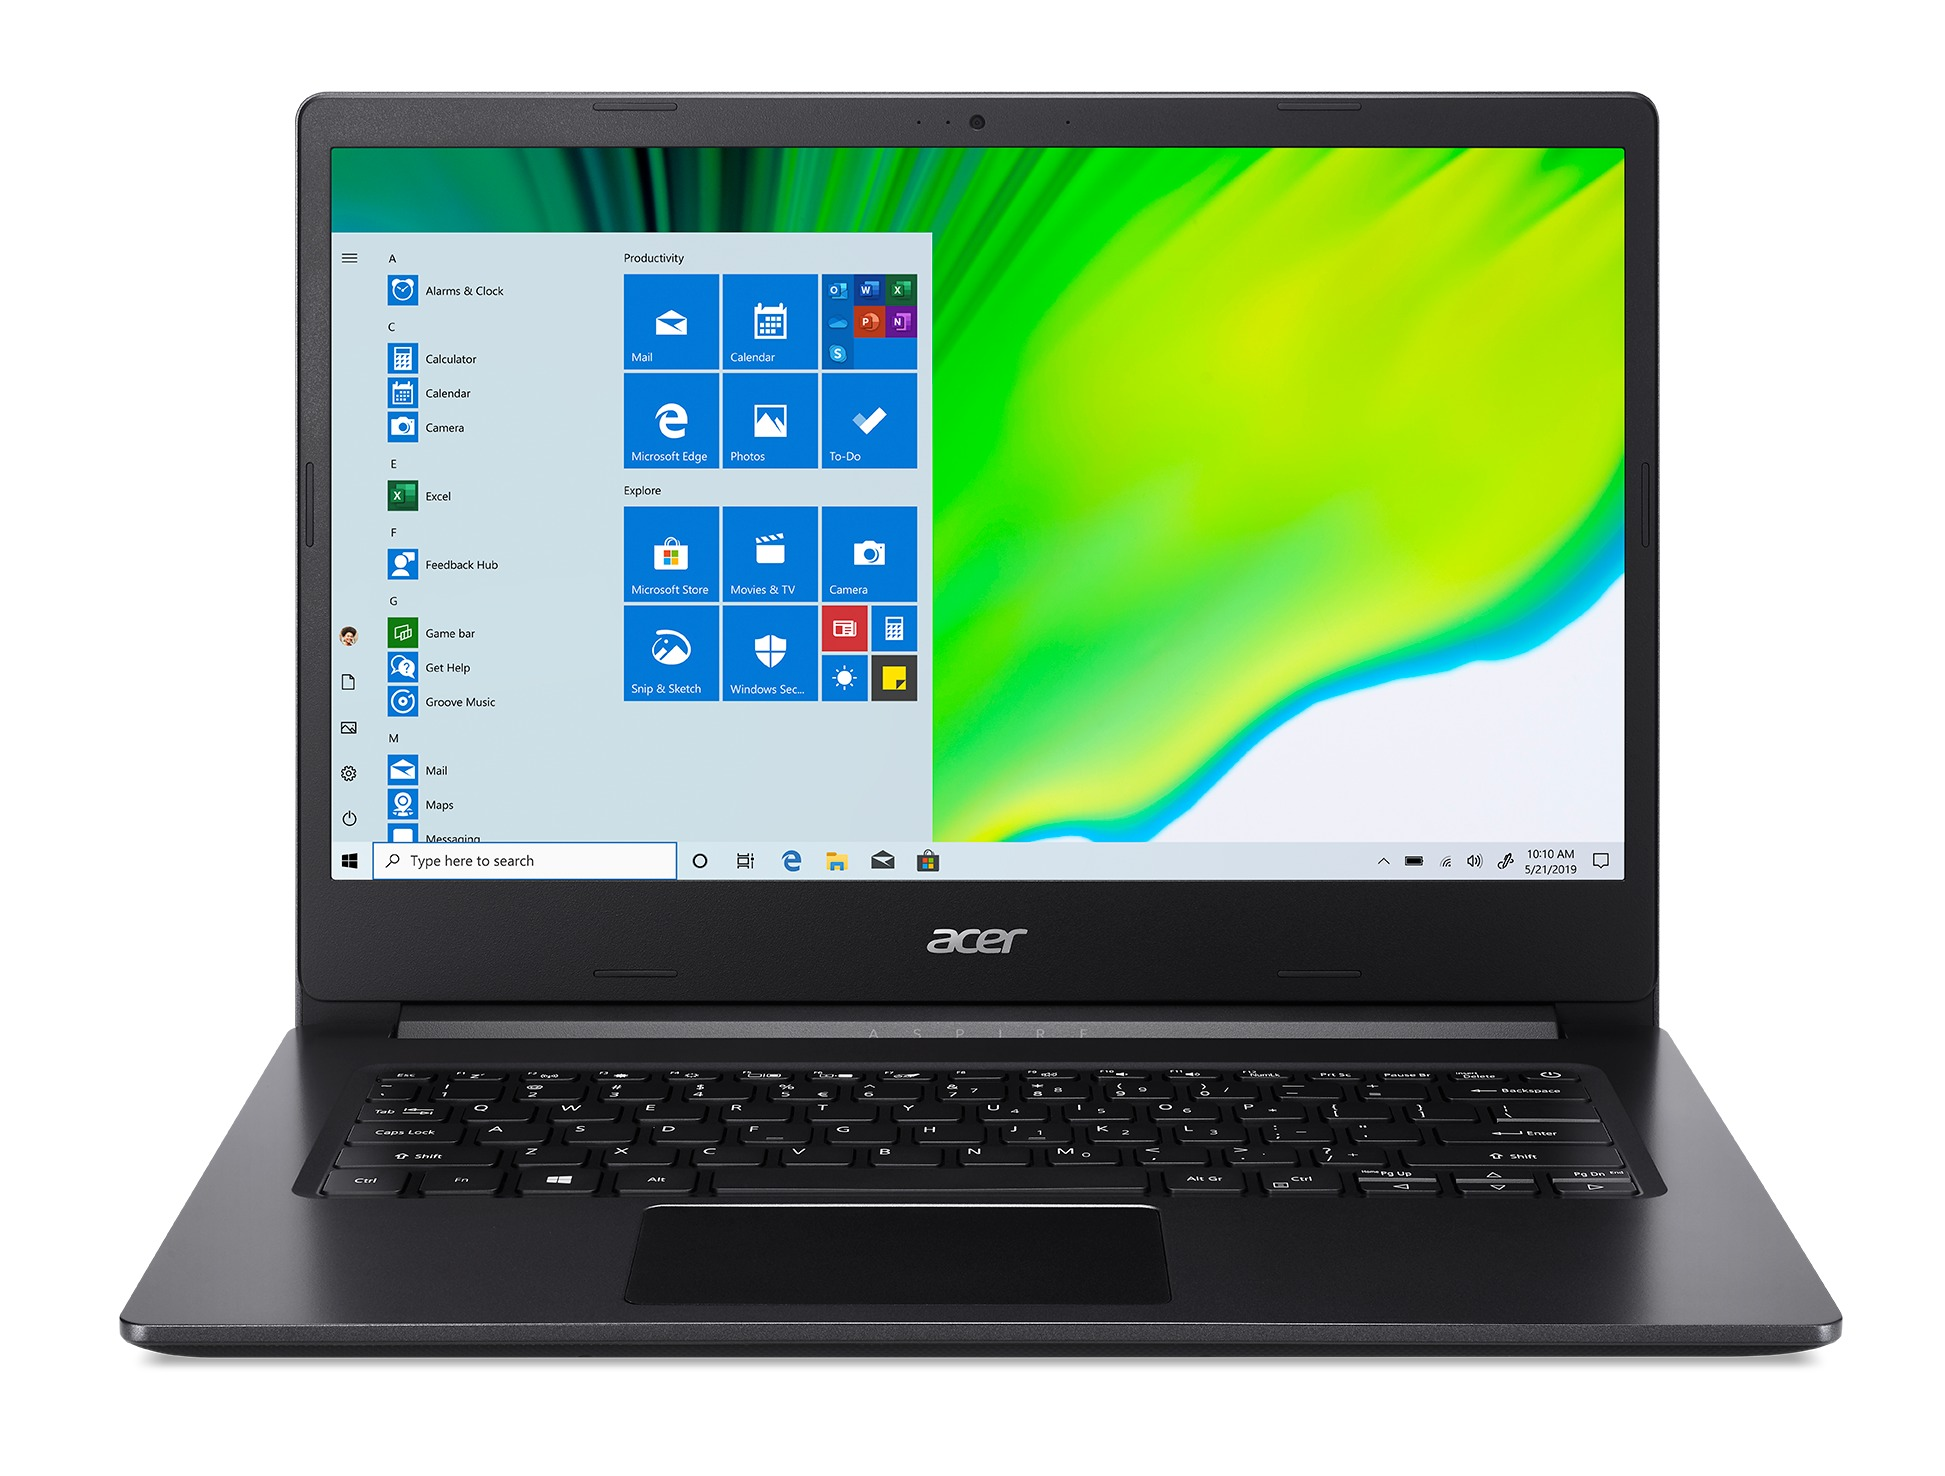 Acer Aspire 3 A314-22-R3Z0 Laptop -